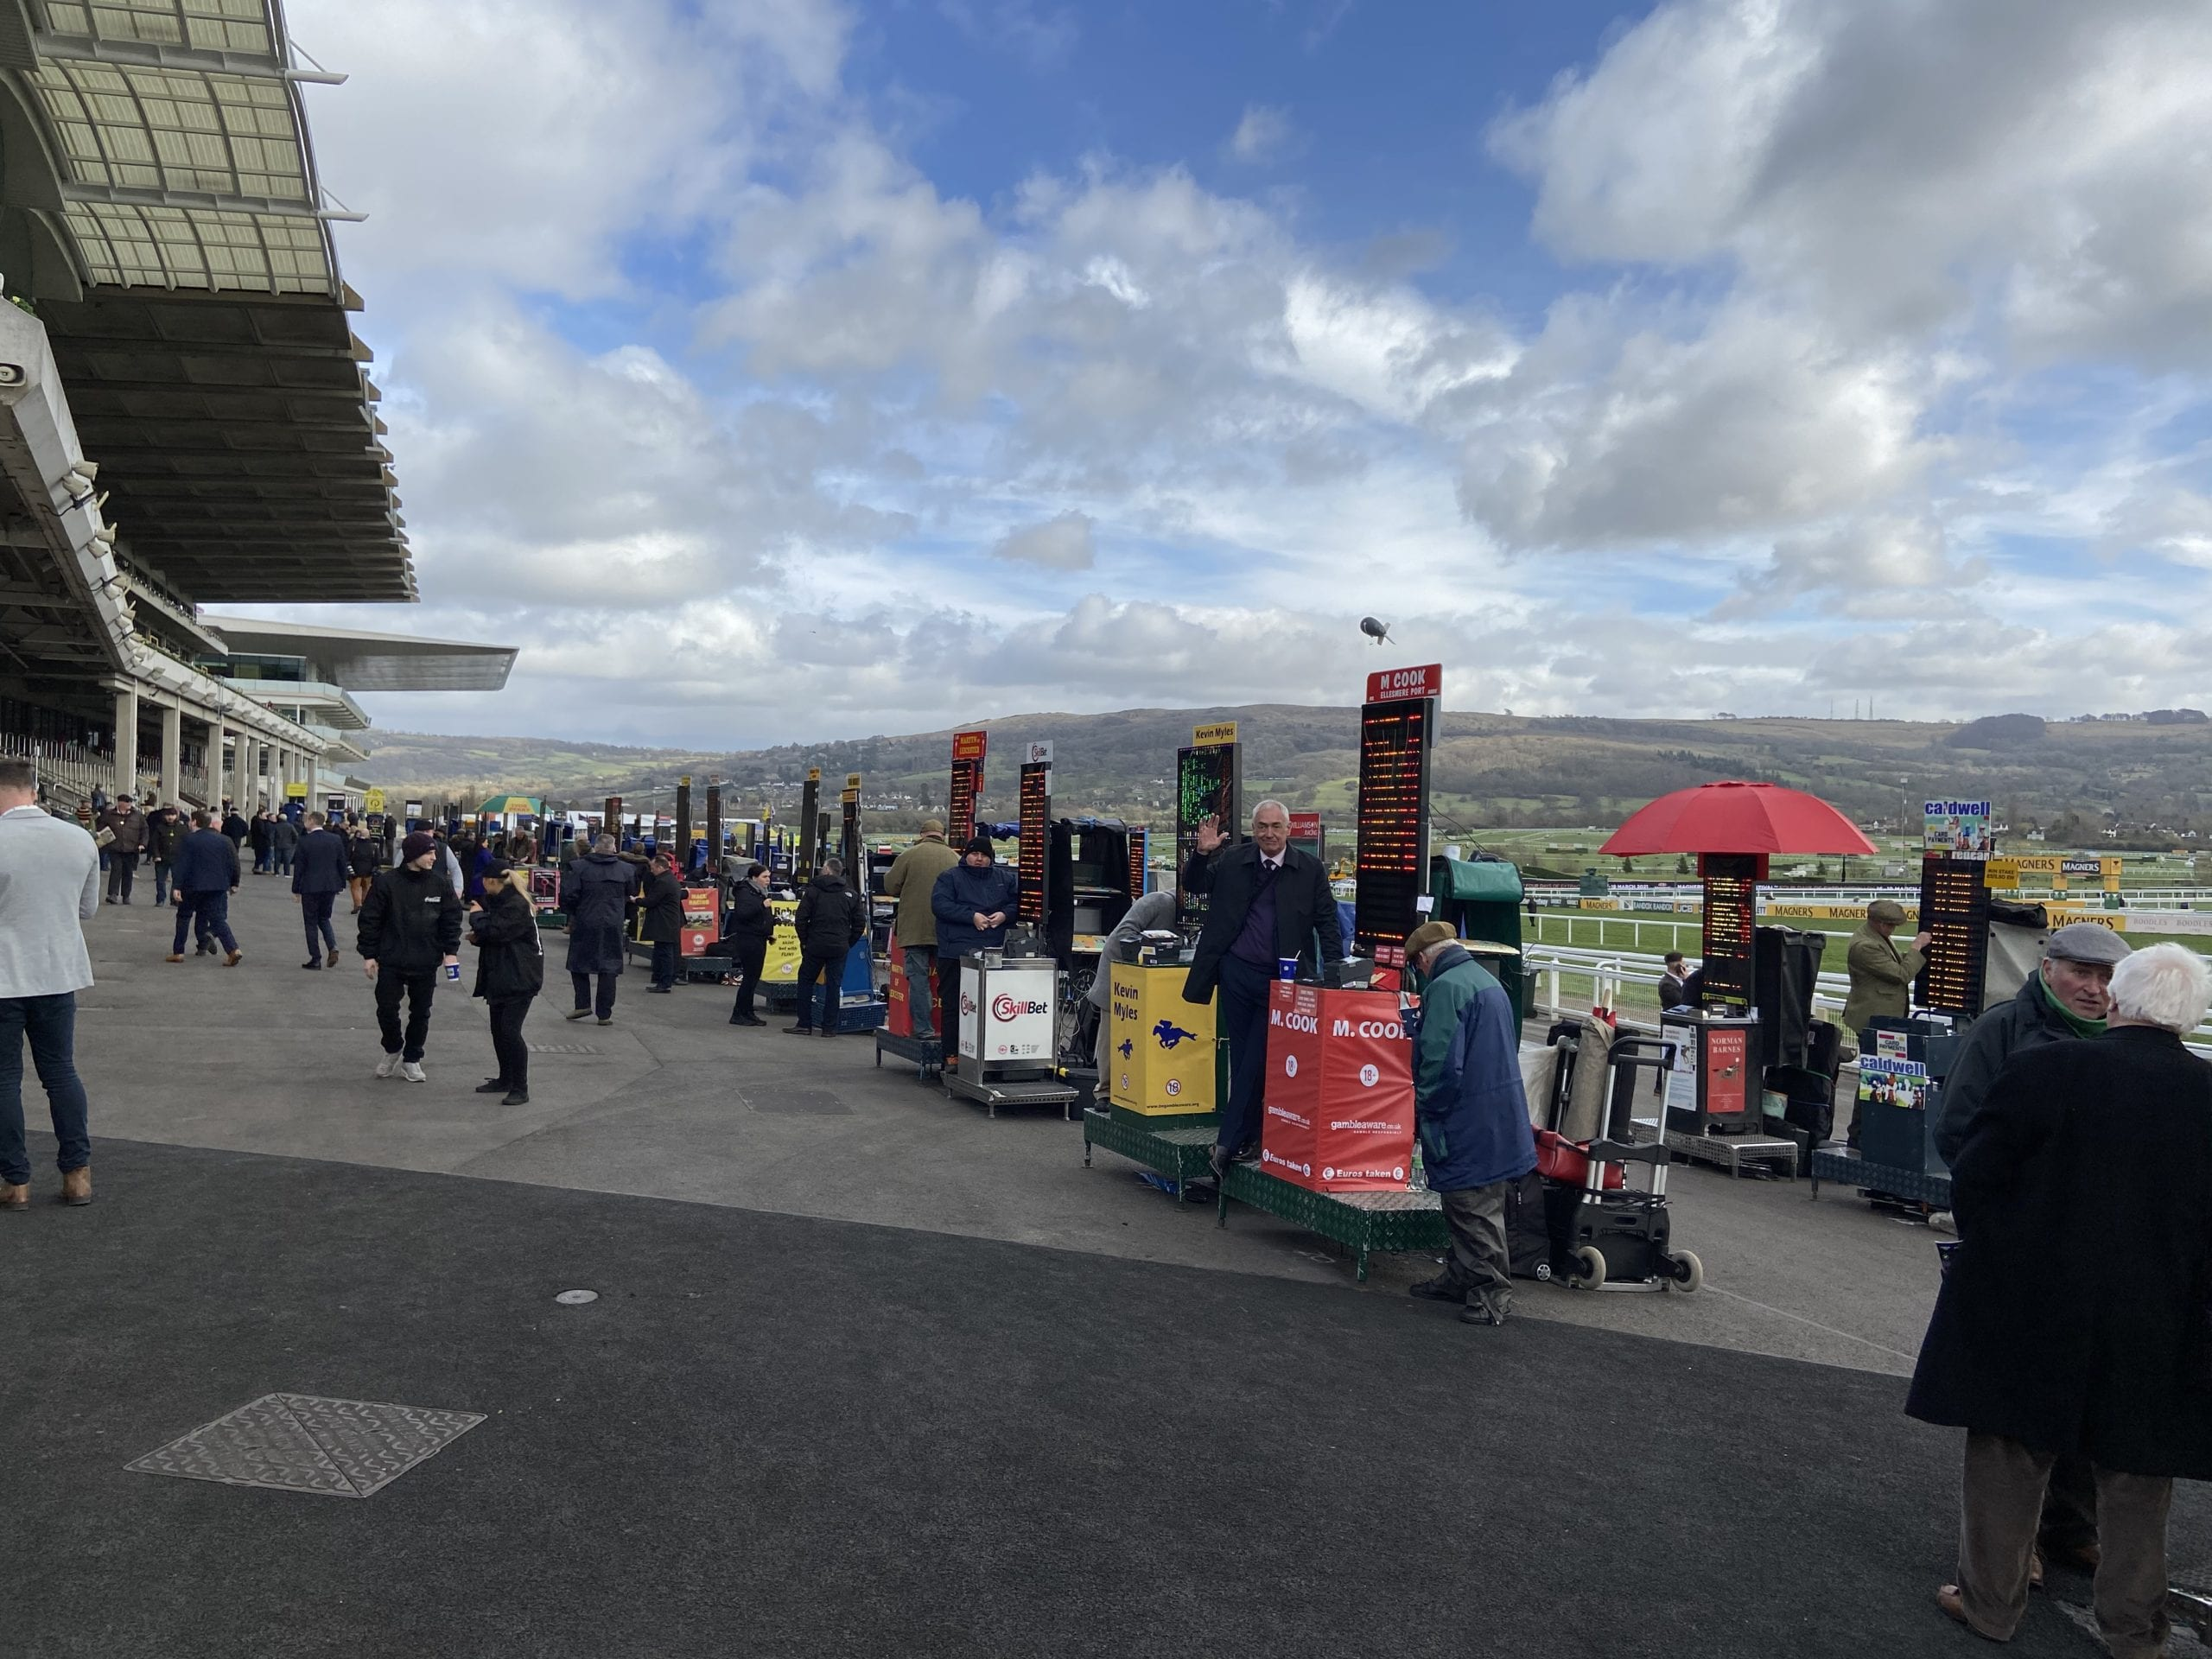 Independent bookies at Cheltenham Racecourse